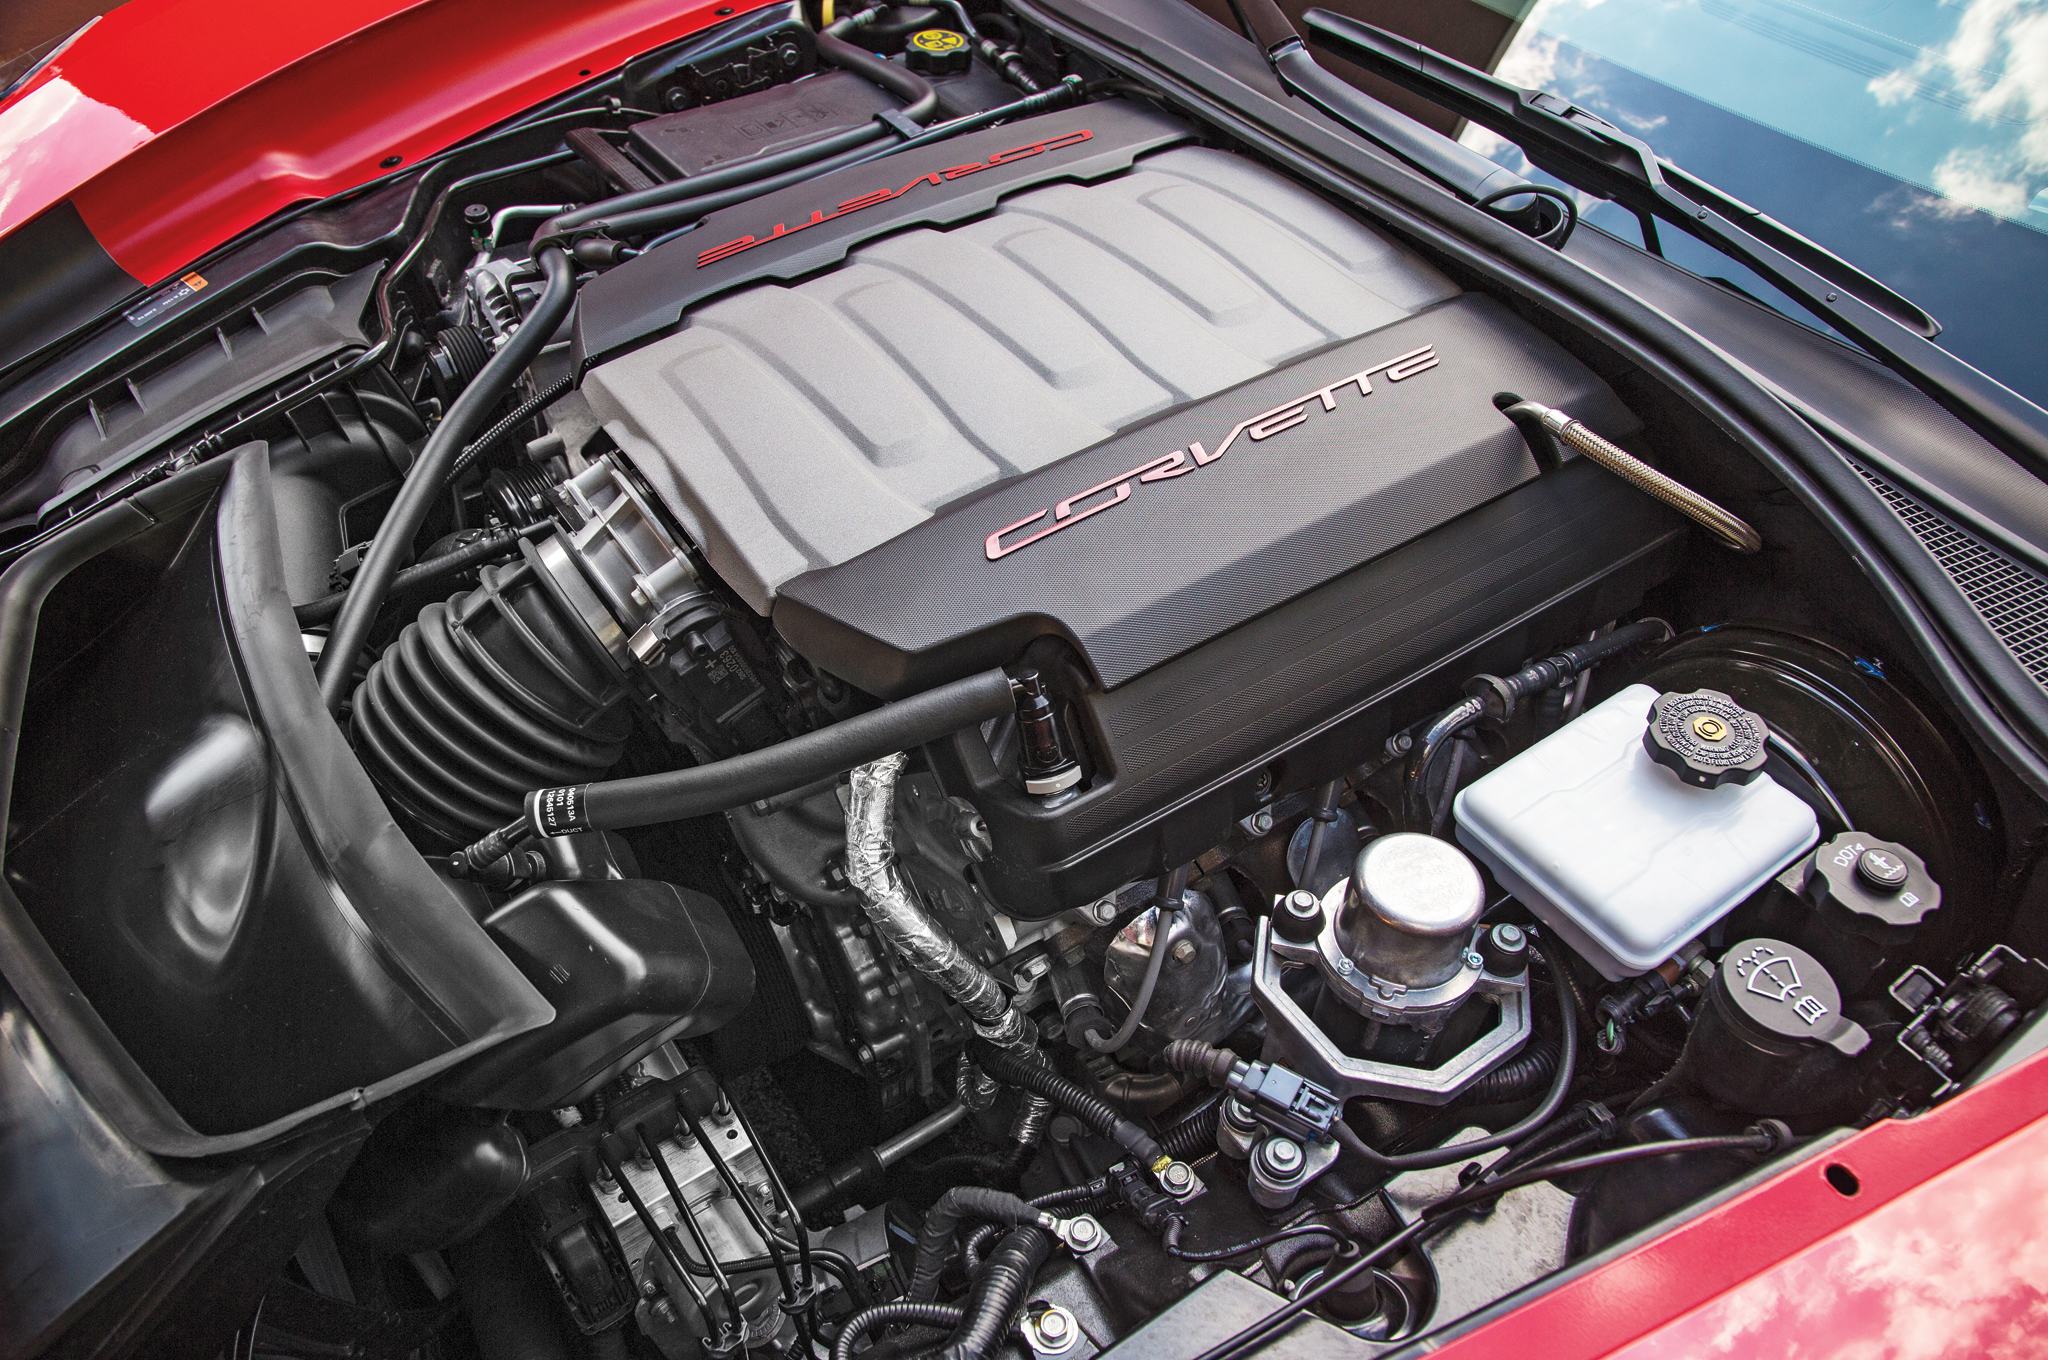 2014 Chevrolet Corvette Stingray Z51 Engine Photo